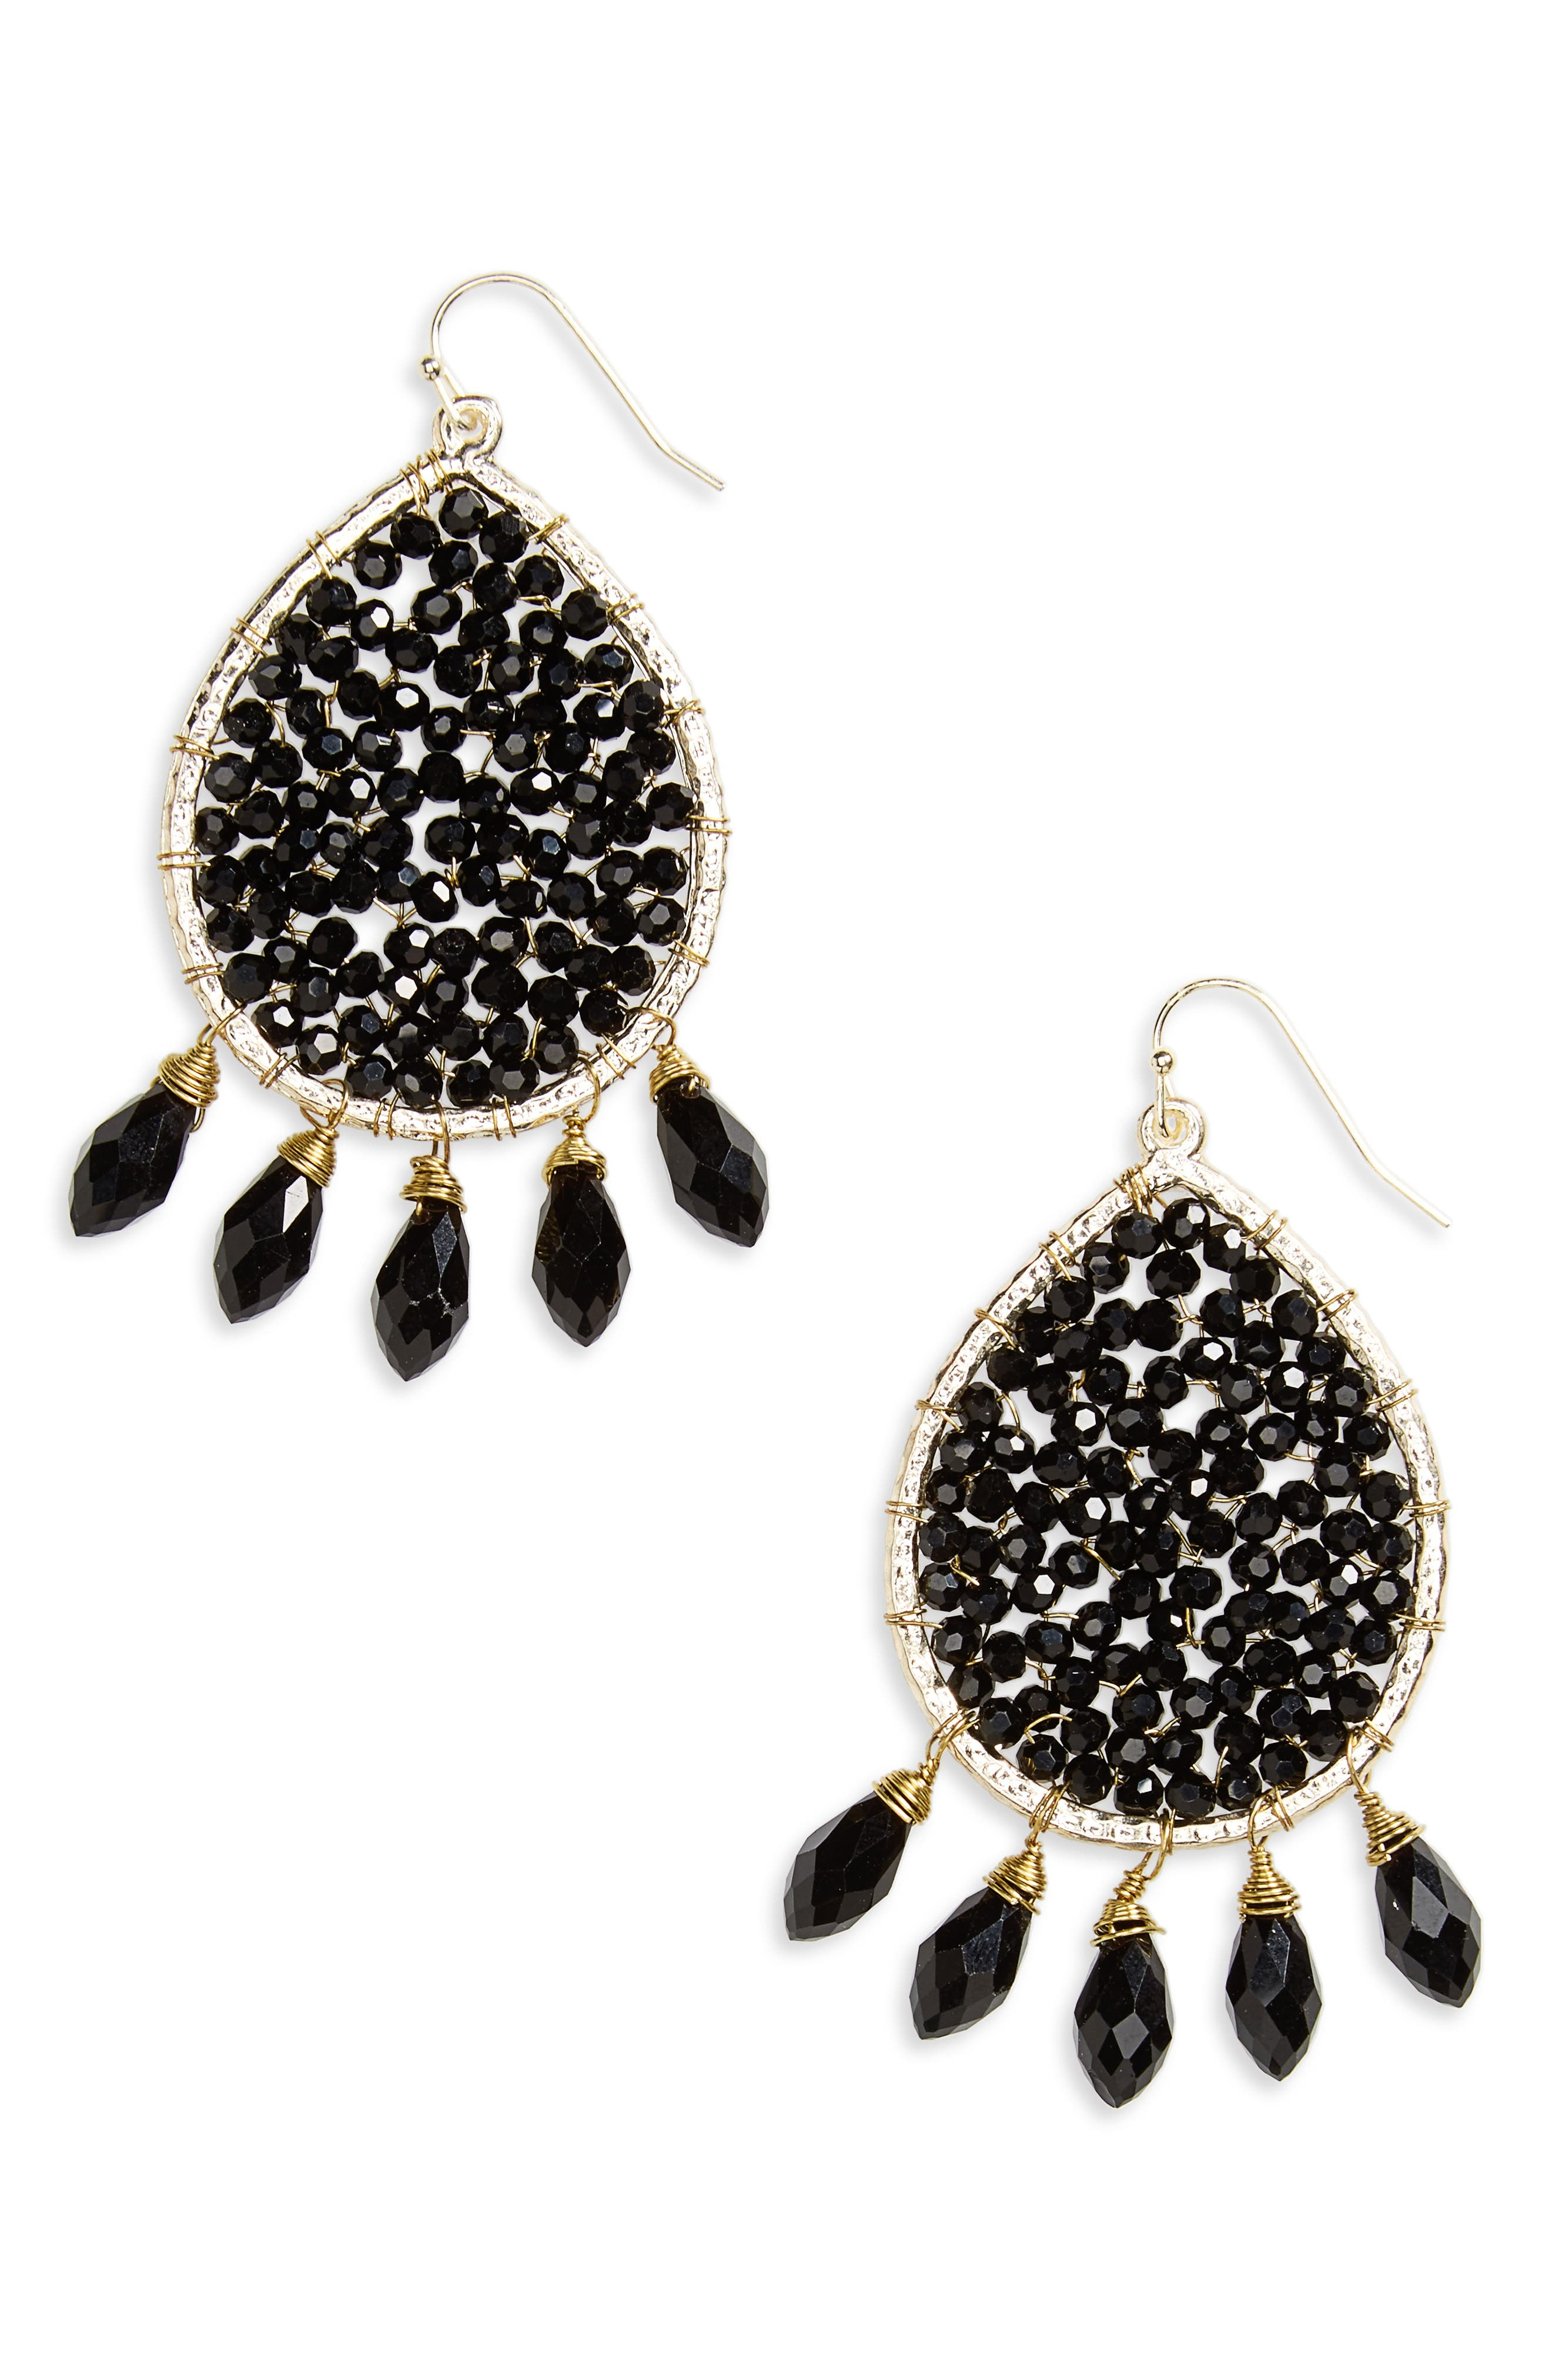 Crystal Teardrop Earrings,                             Main thumbnail 1, color,                             Black